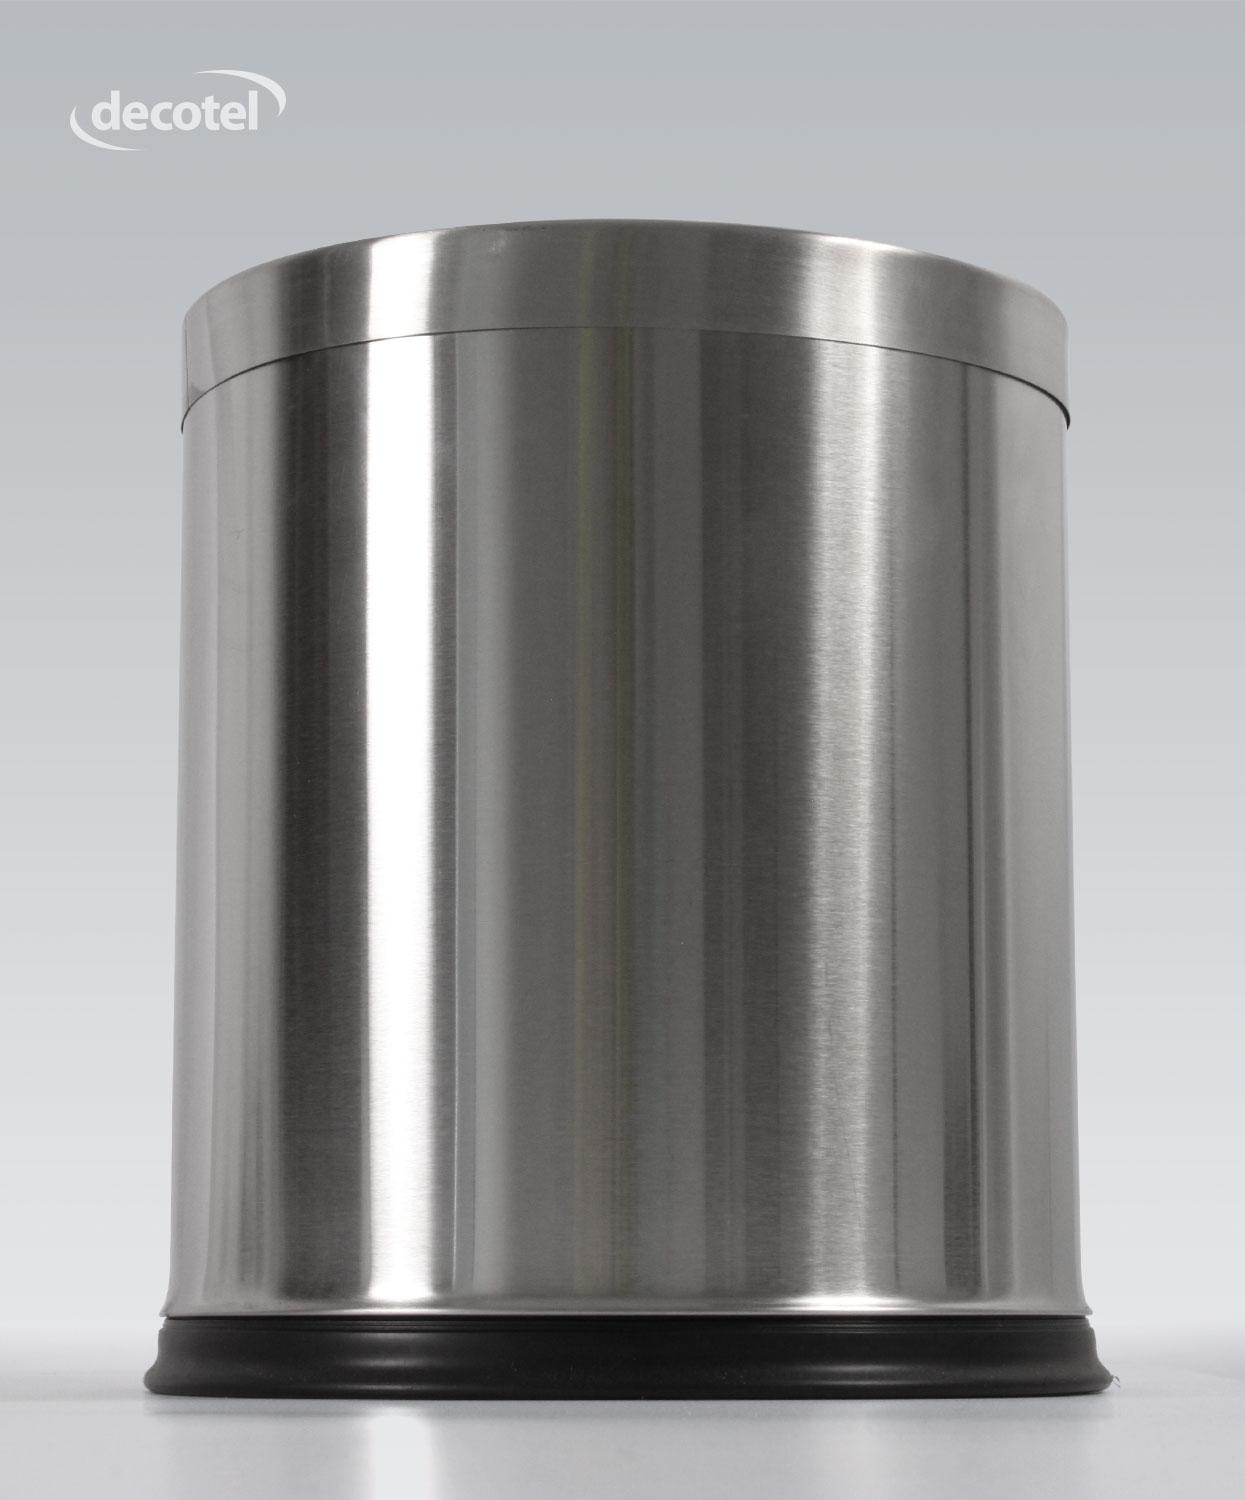 Stainless Steel Bedroom Bin